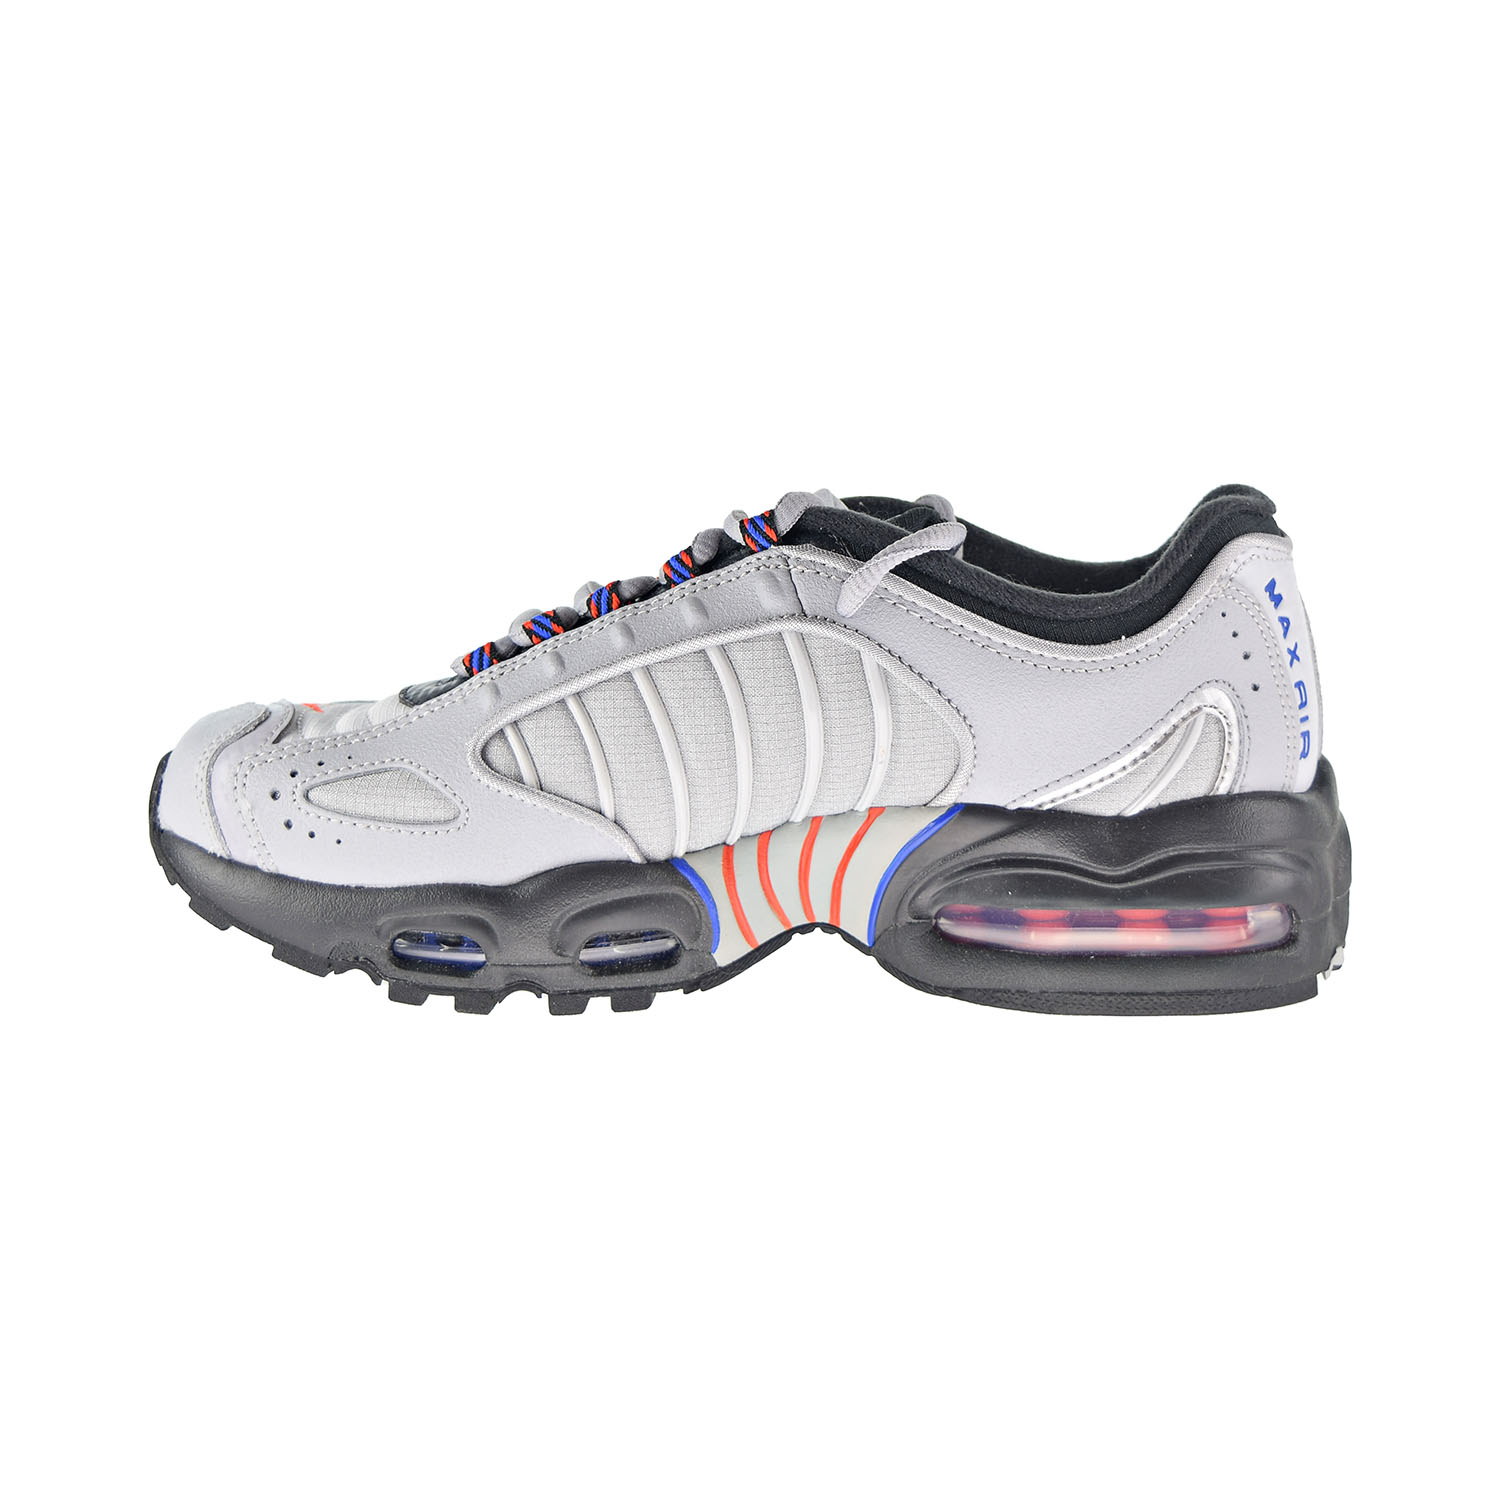 Details about Nike Air Max Tailwind 4 SE Big Kids' Shoes Wolf Grey Pure Platinum CK0700 001